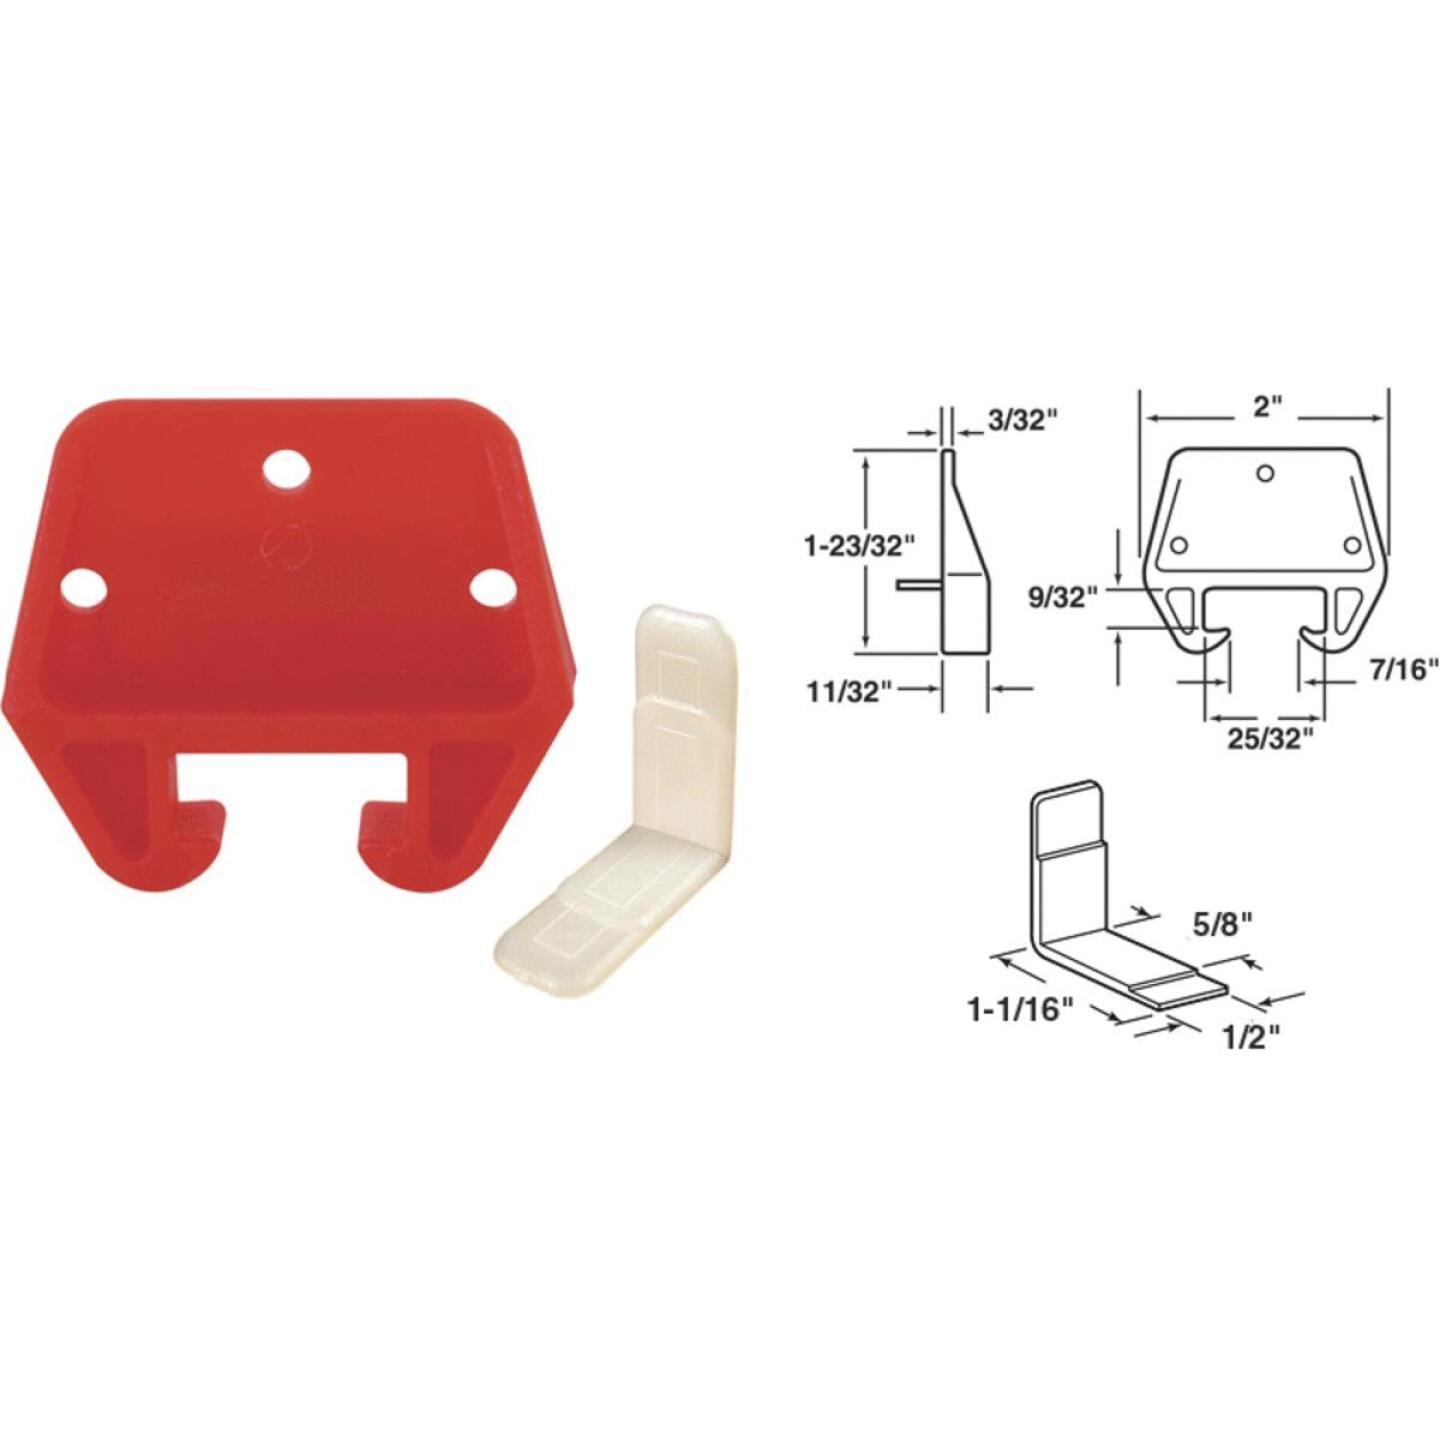 """Prime-Line 13/16"""" x 25/32"""" Polyethylene Track Guide, White and Red (2 Count) Image 1"""